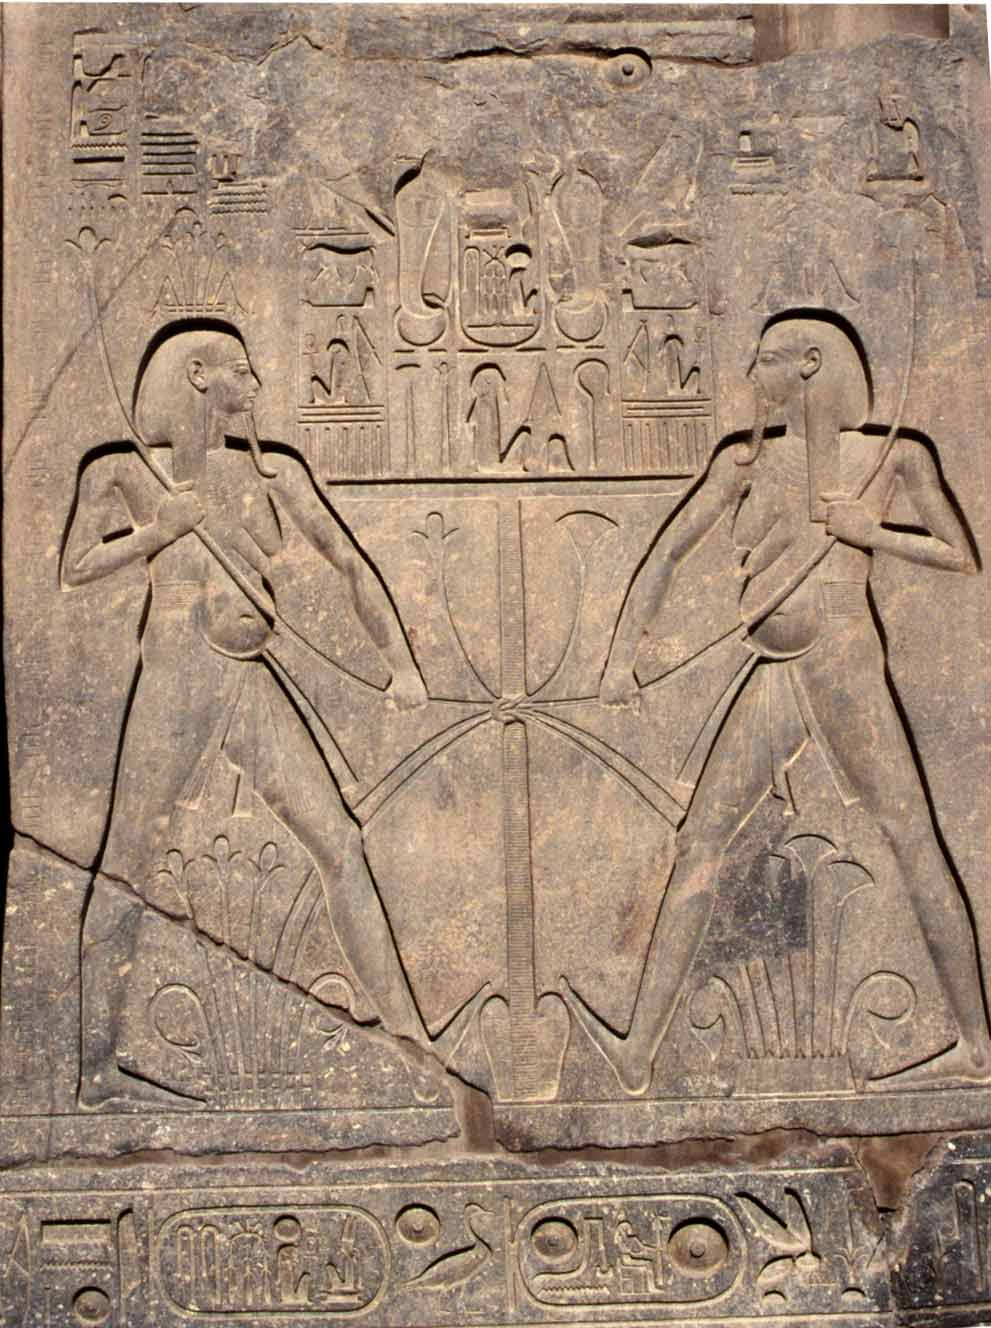 Horus and Seth: The oldest existing Value Quote?